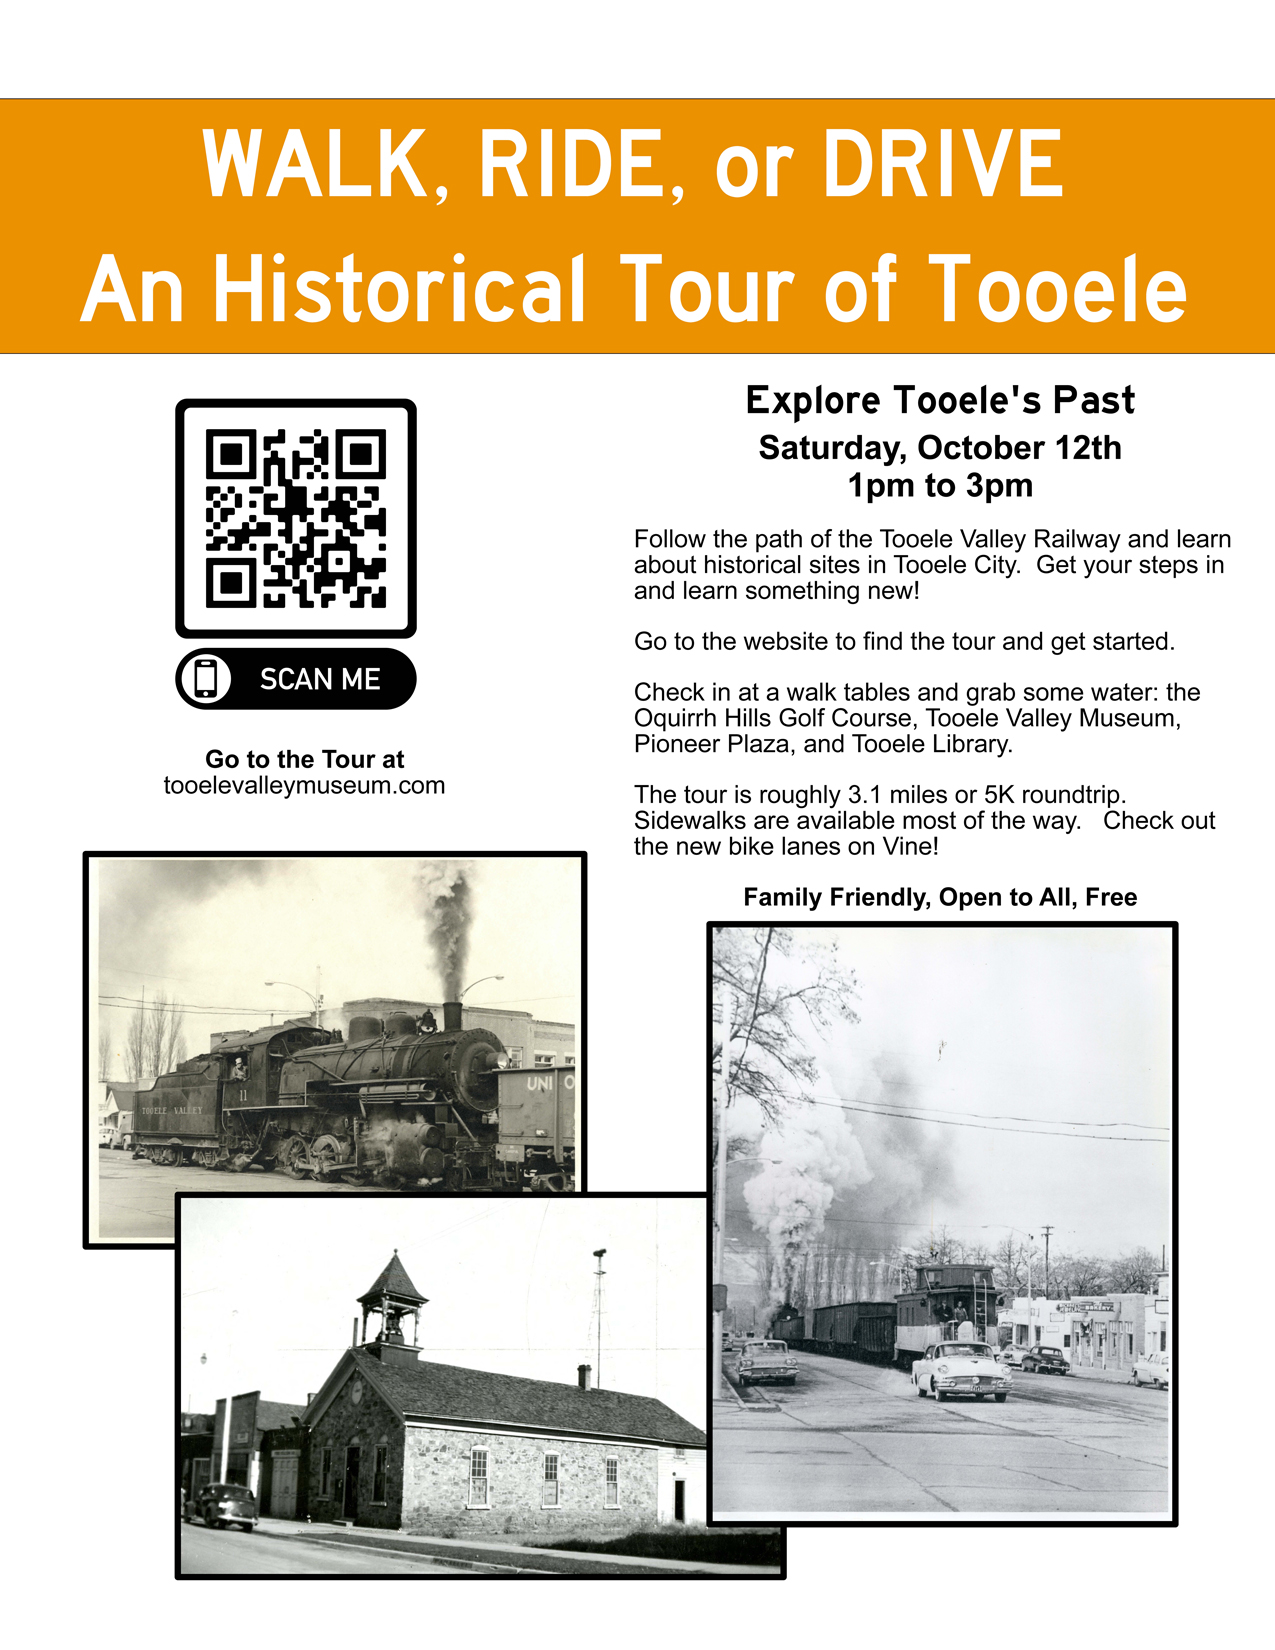 Historical Tour of Tooele